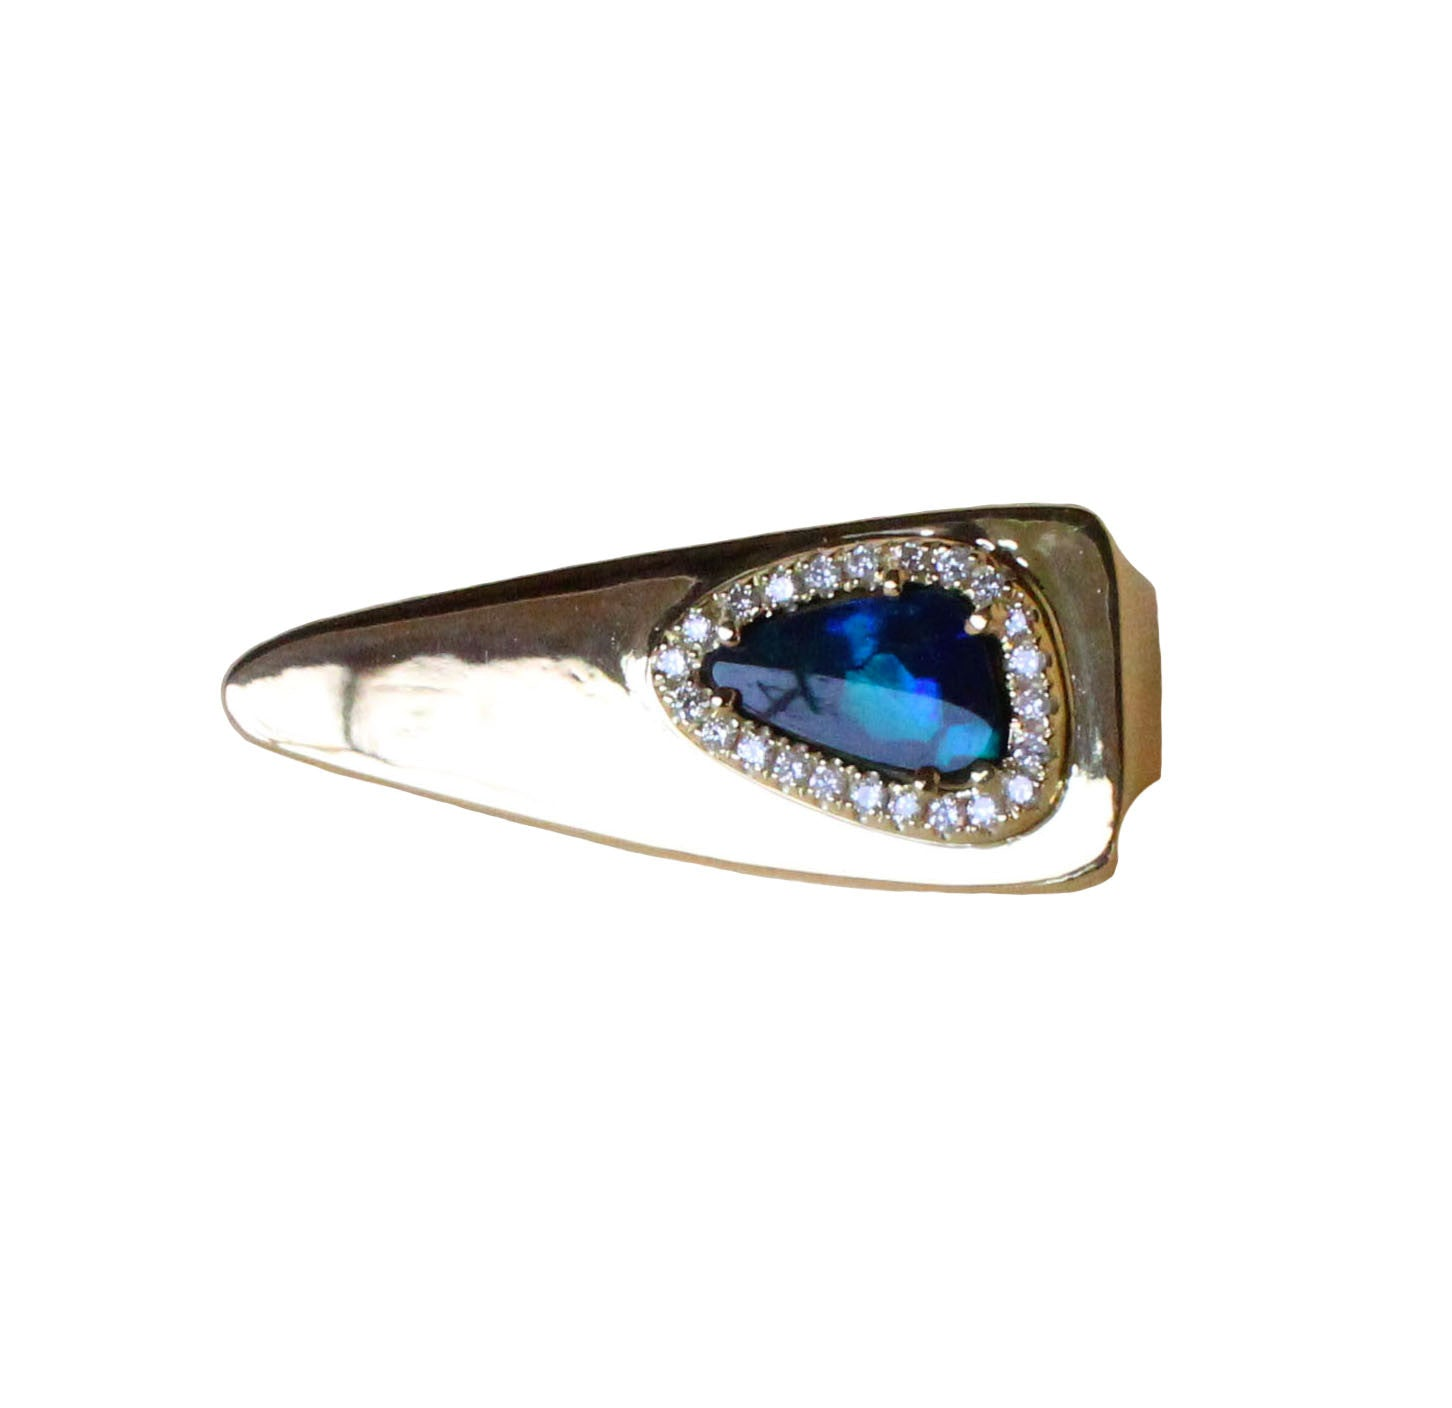 Australian black opal diamond solid 14k yellow gold tie clip - Ready to ship CLICK HERE - Sarah Hughes - 3